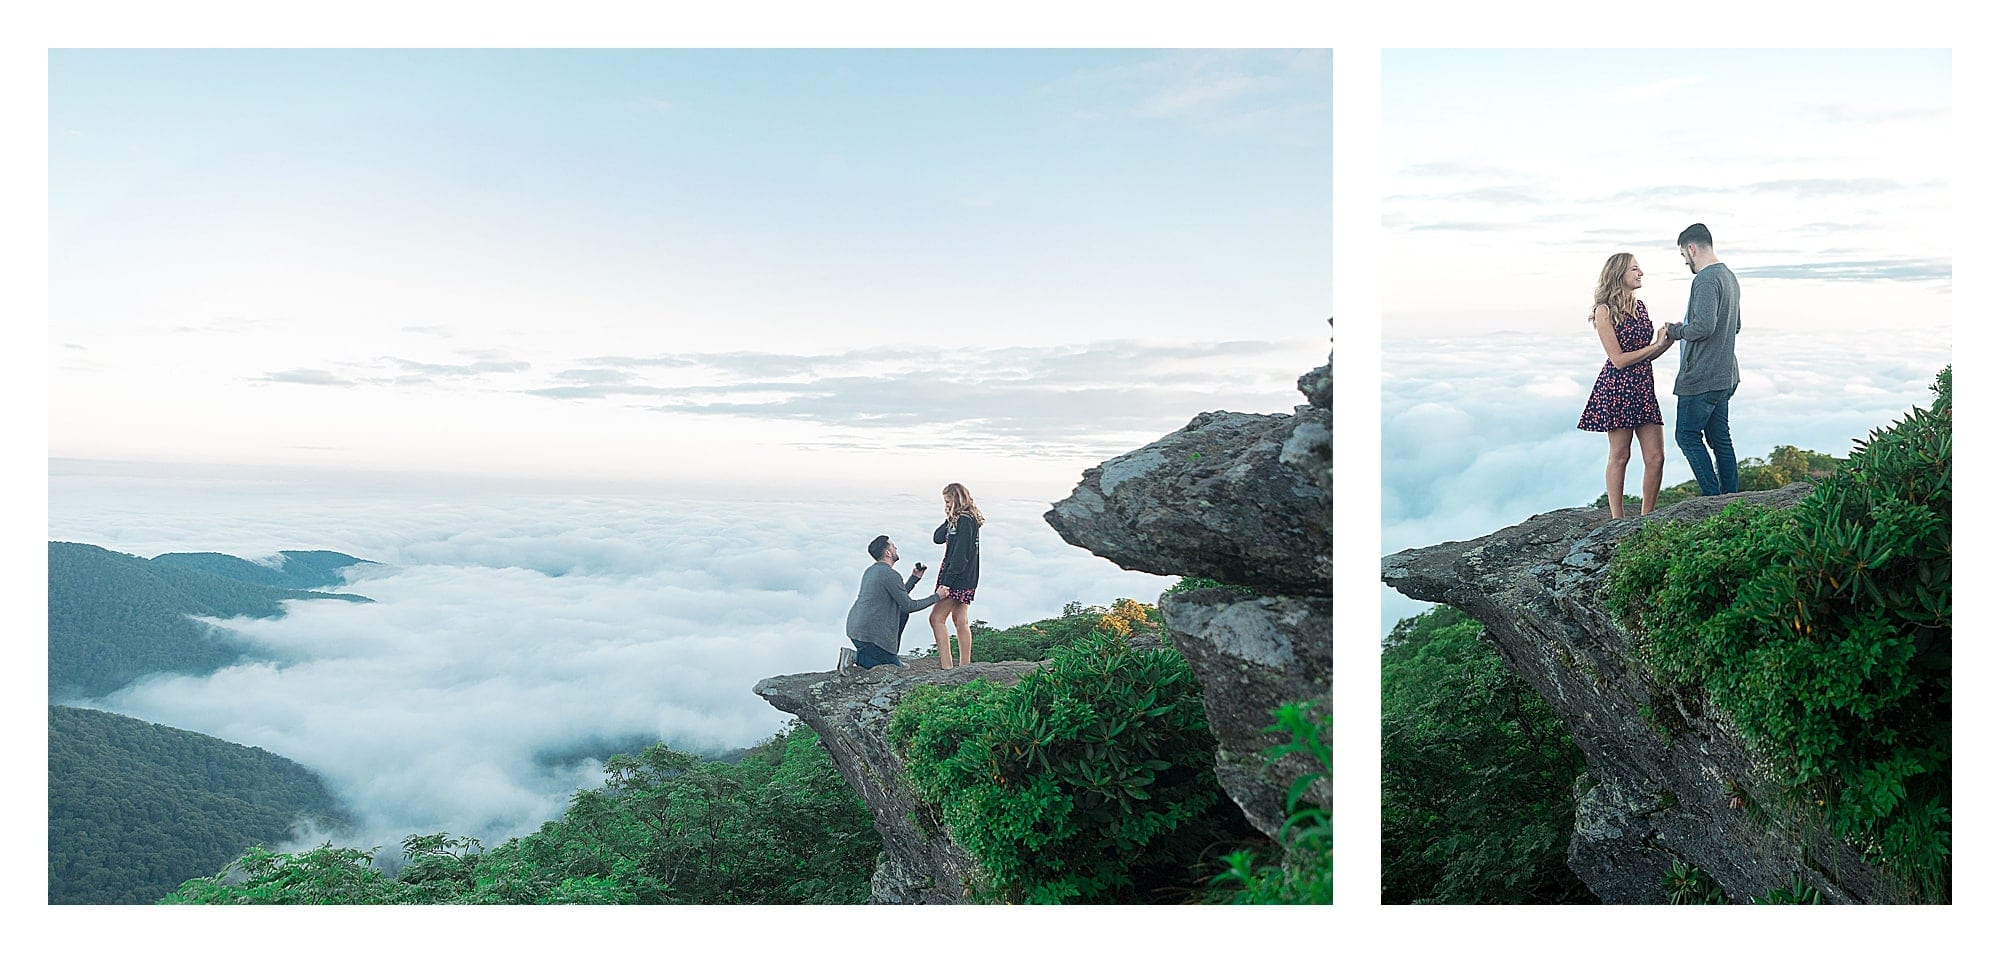 Man proposing to woman on top of mountains edge early morning